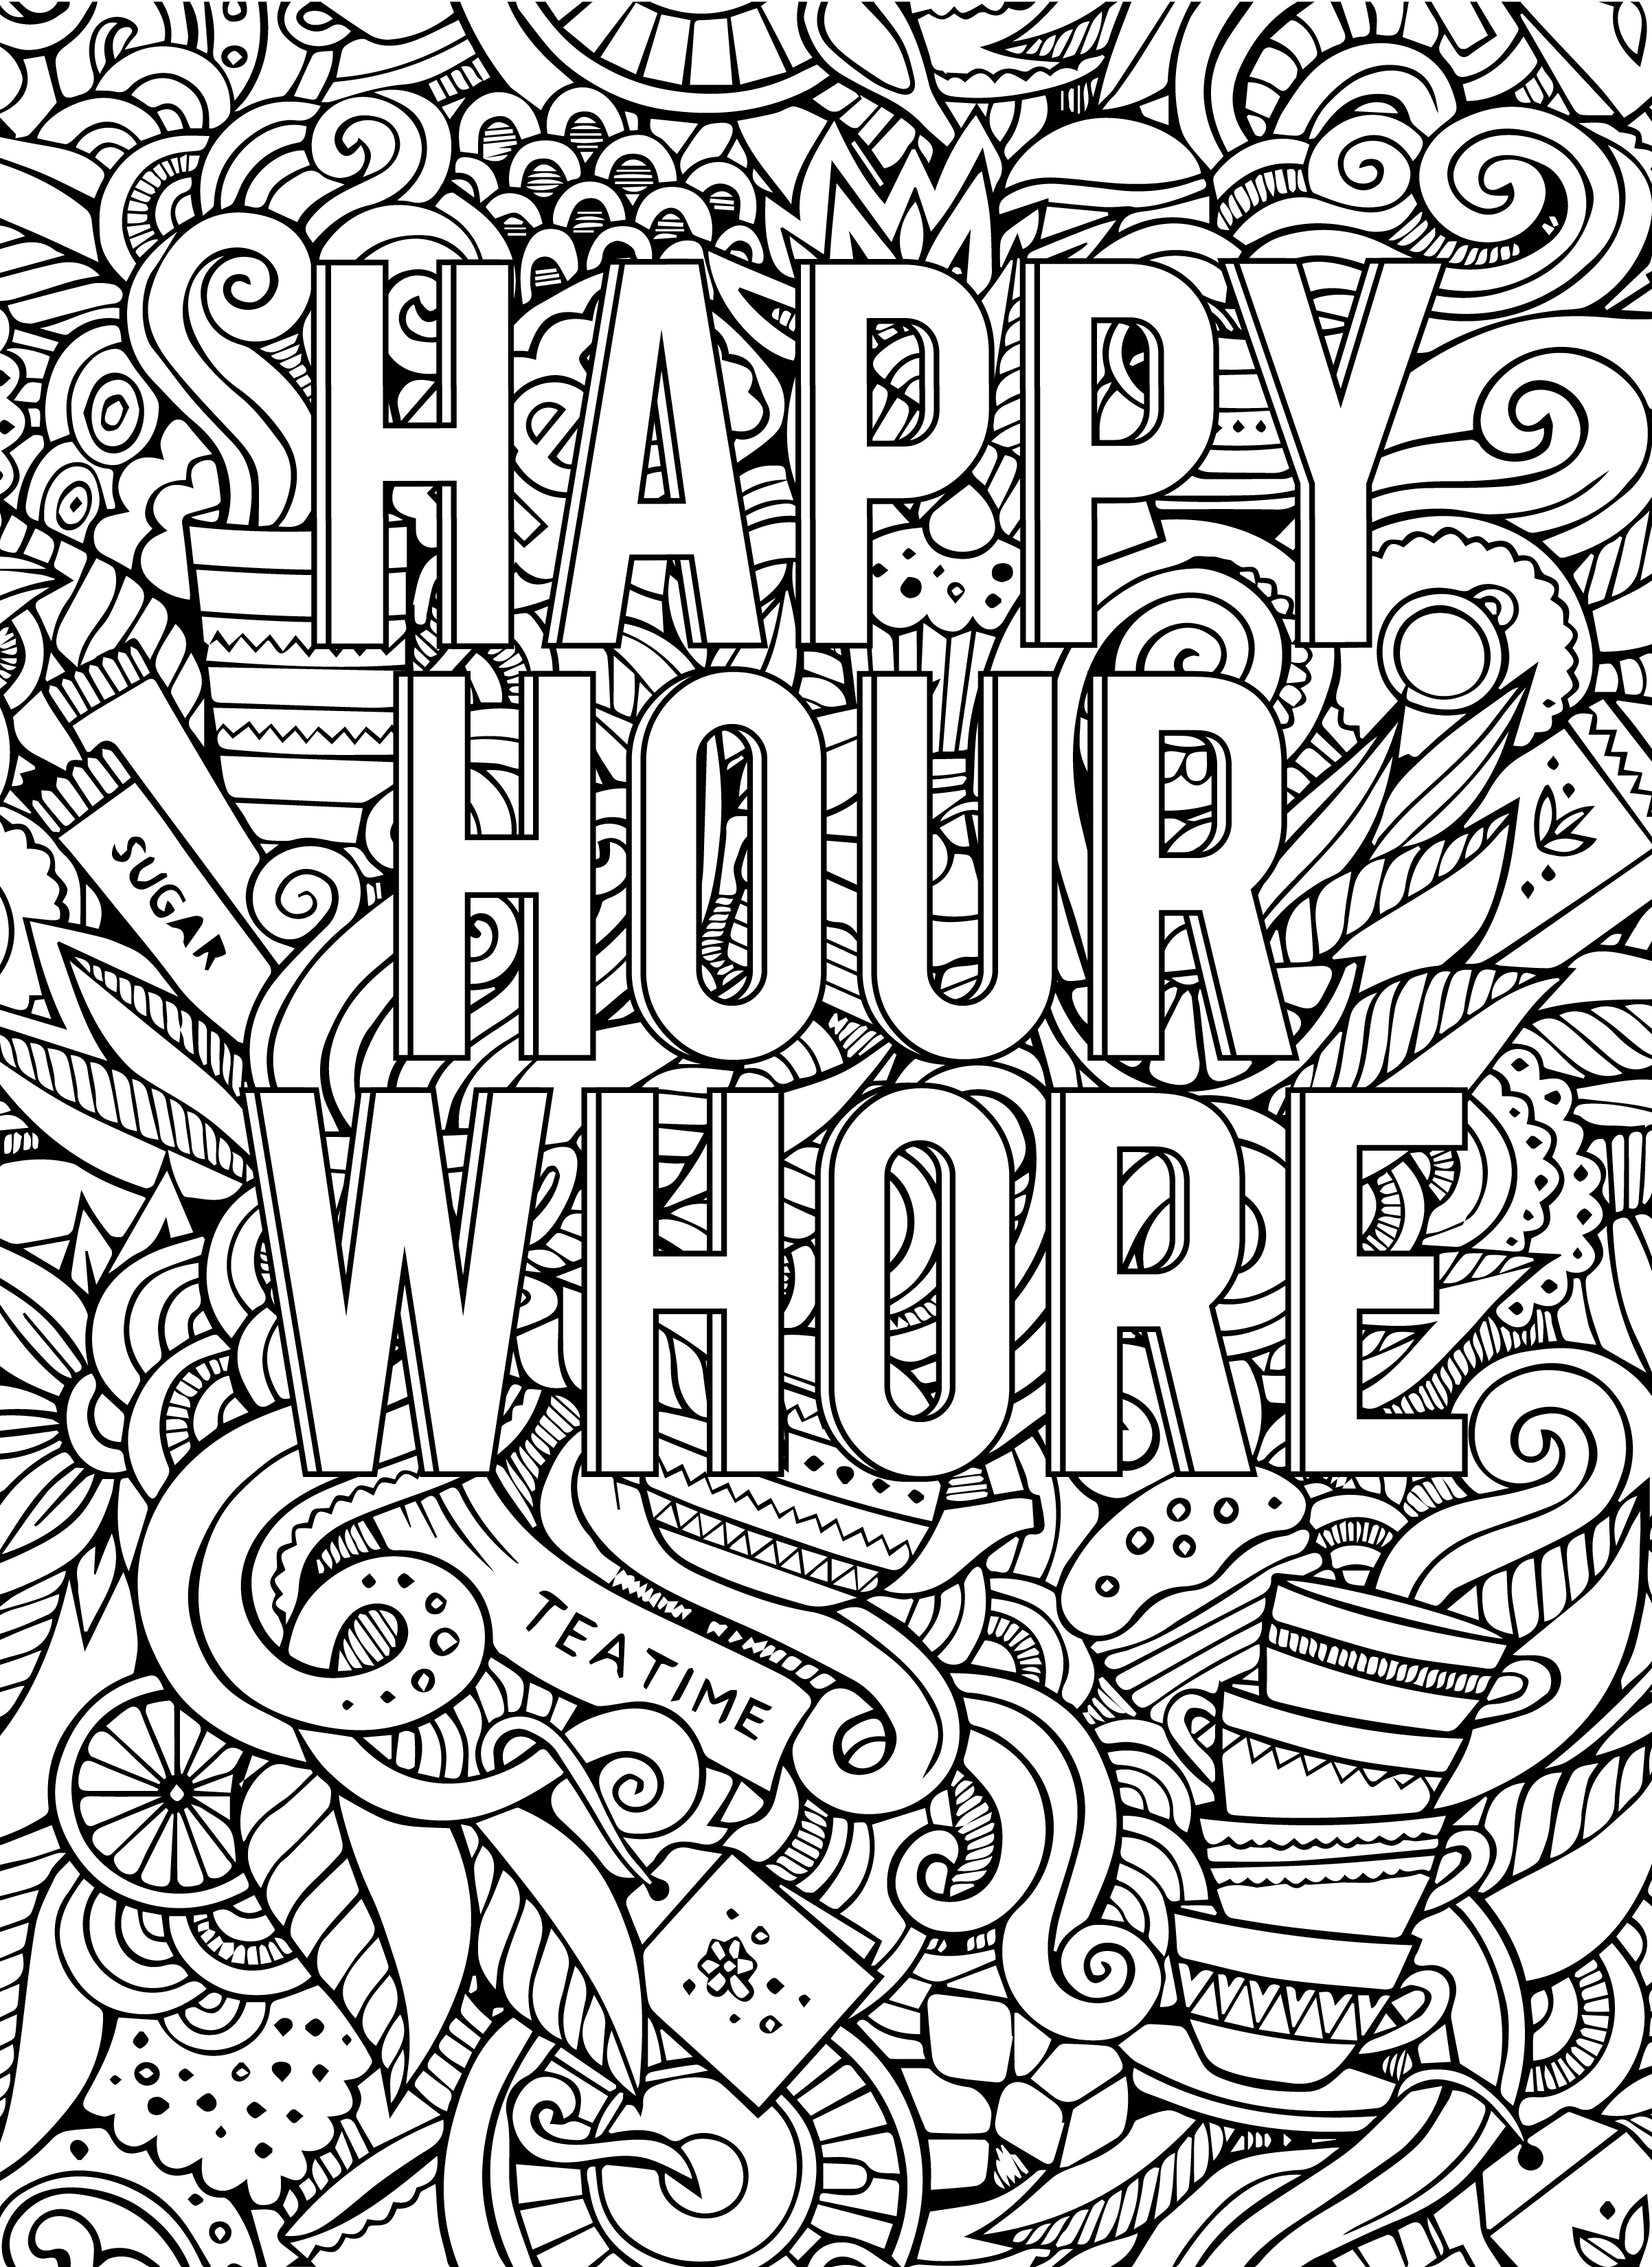 Bad word coloring pages - Swear Word Adult Coloring Book For Adult Pages Happy Hour Whore